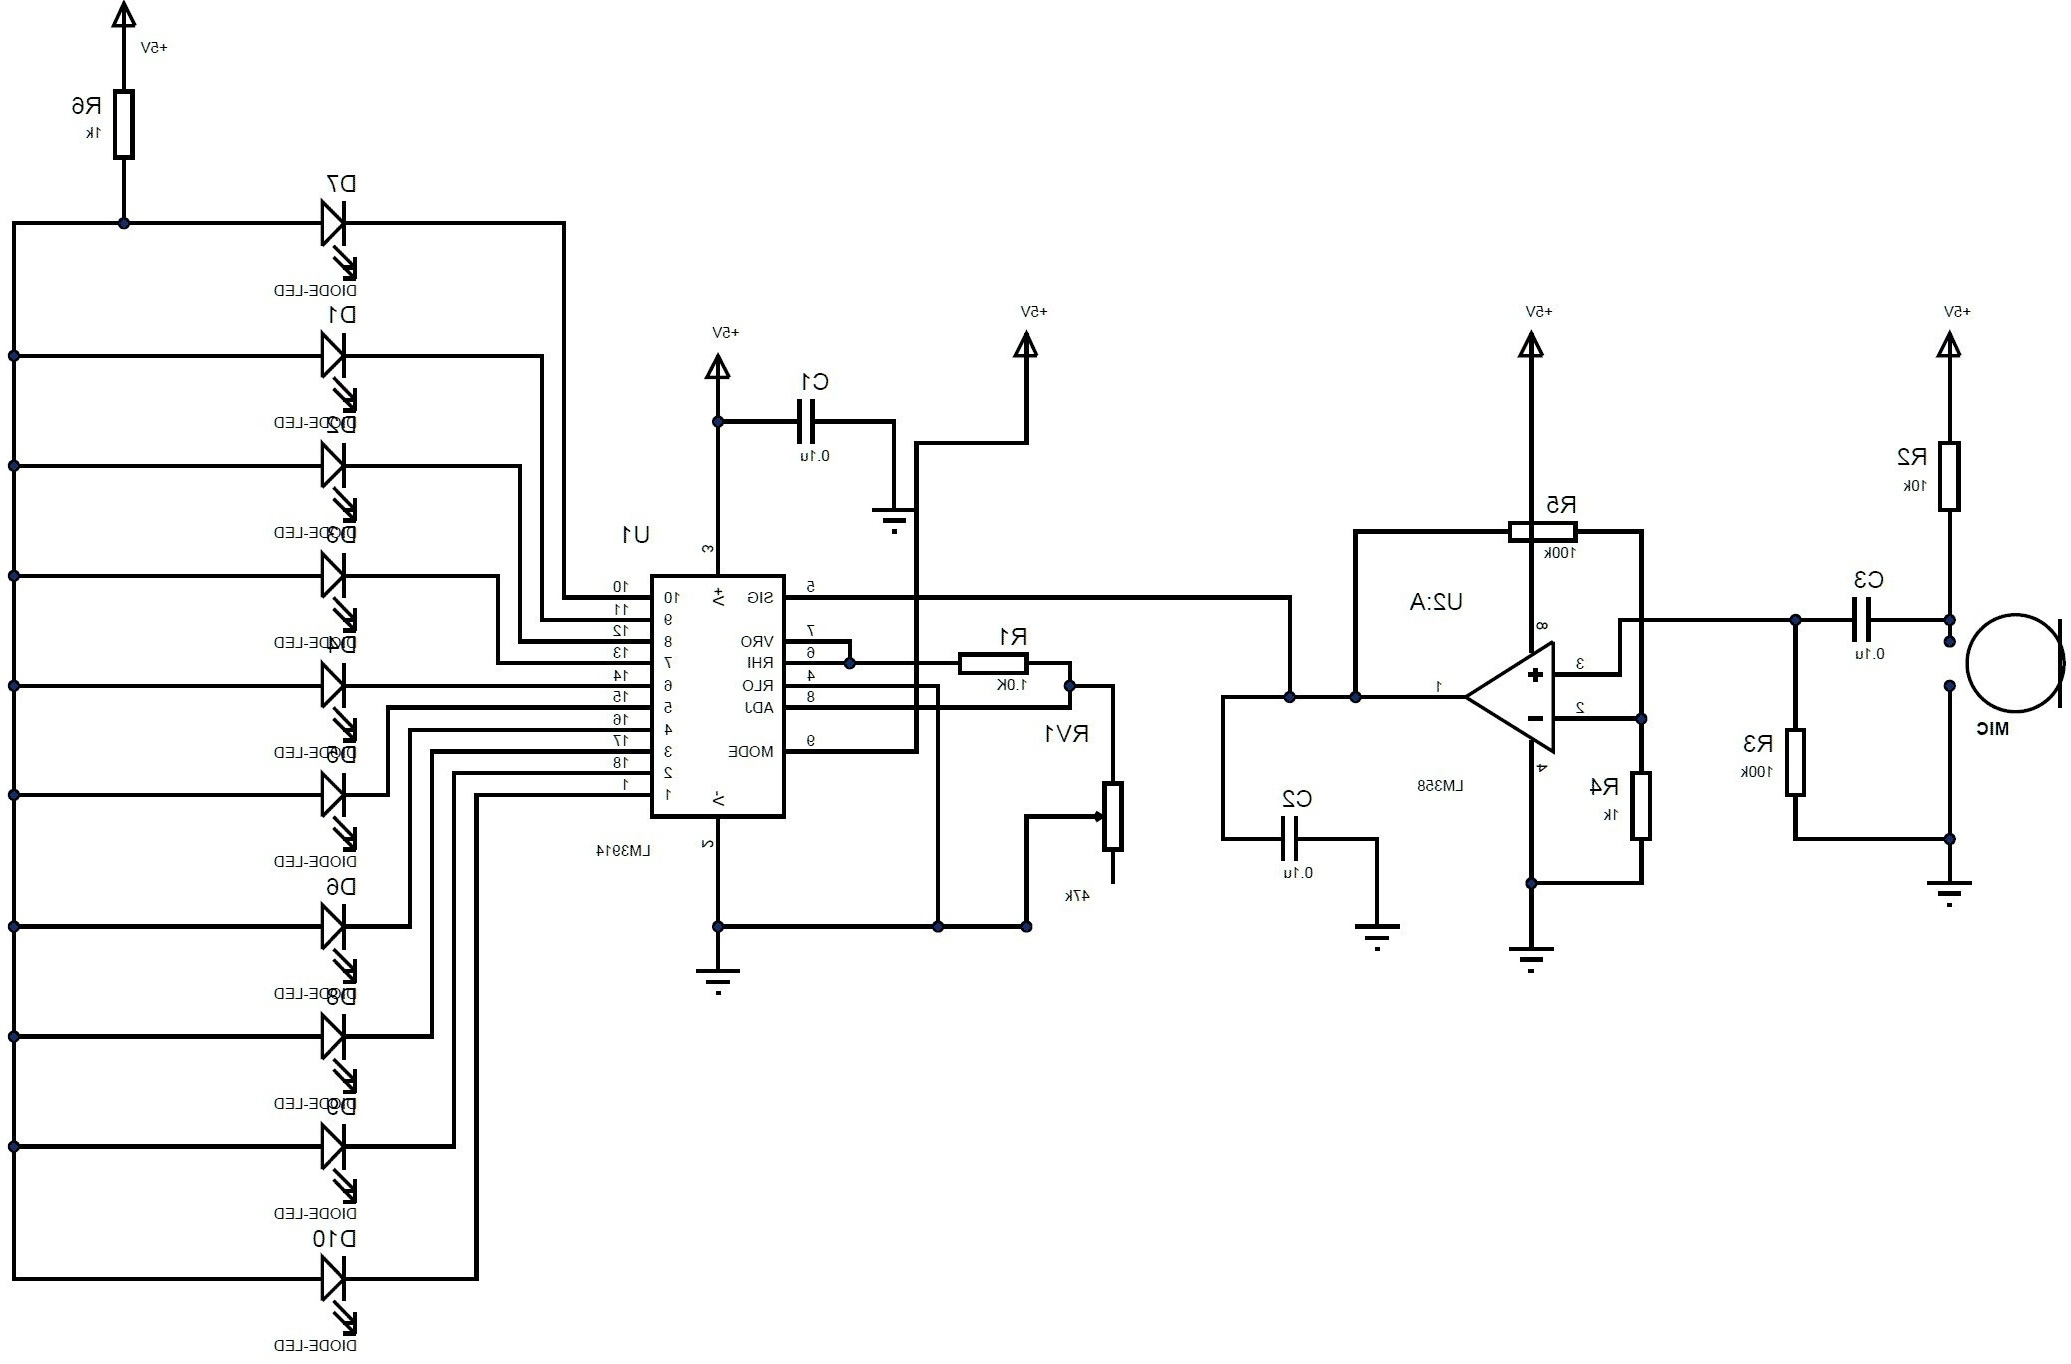 5 Best Images Of Photocell Wiring Diagram - Trusted Wiring Diagram - Photocell Wiring Diagram